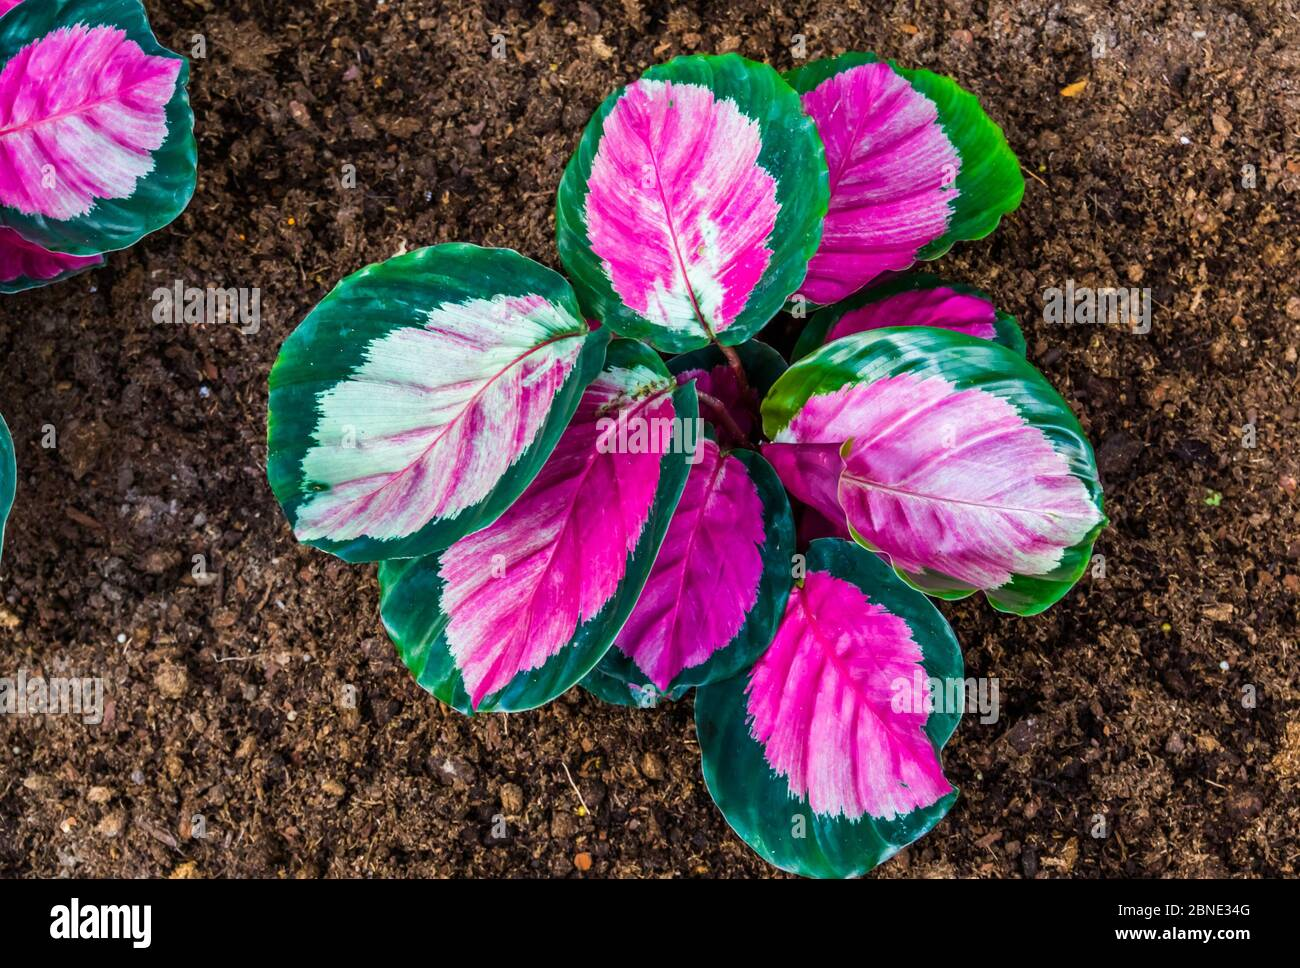 Closeup Of A Pink Elephant Ear Plant Tropical Plant Specie From America Stock Photo Alamy